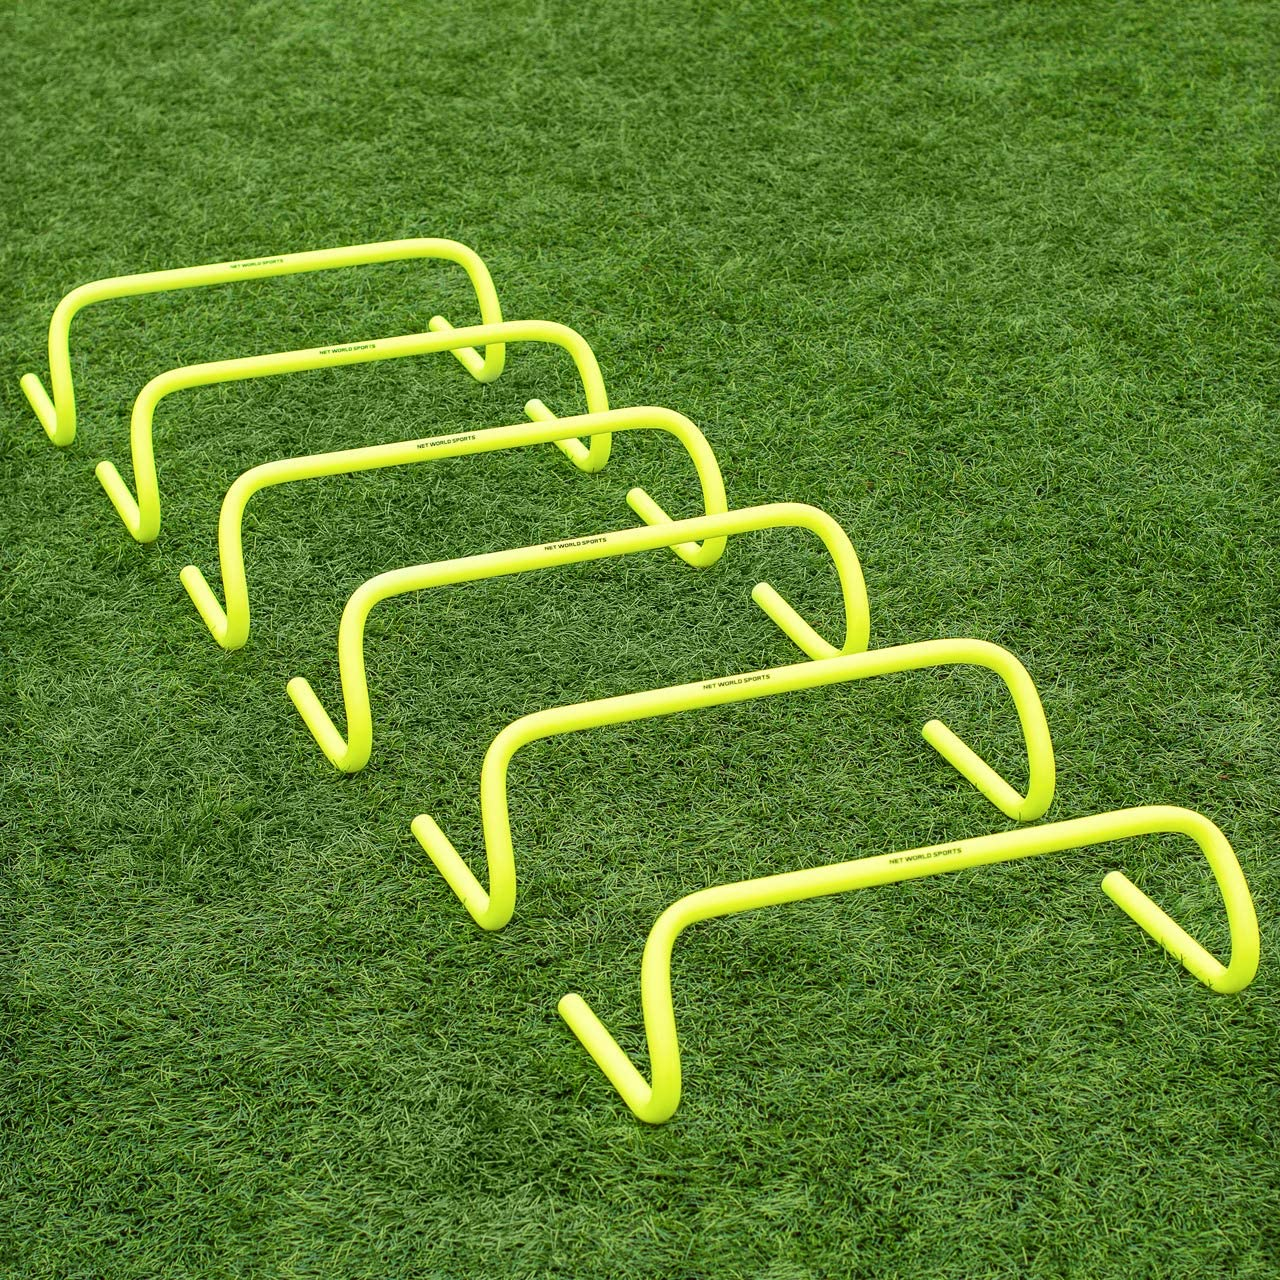 Set of 6 Workoutz Speed and Agility Training Hurdles